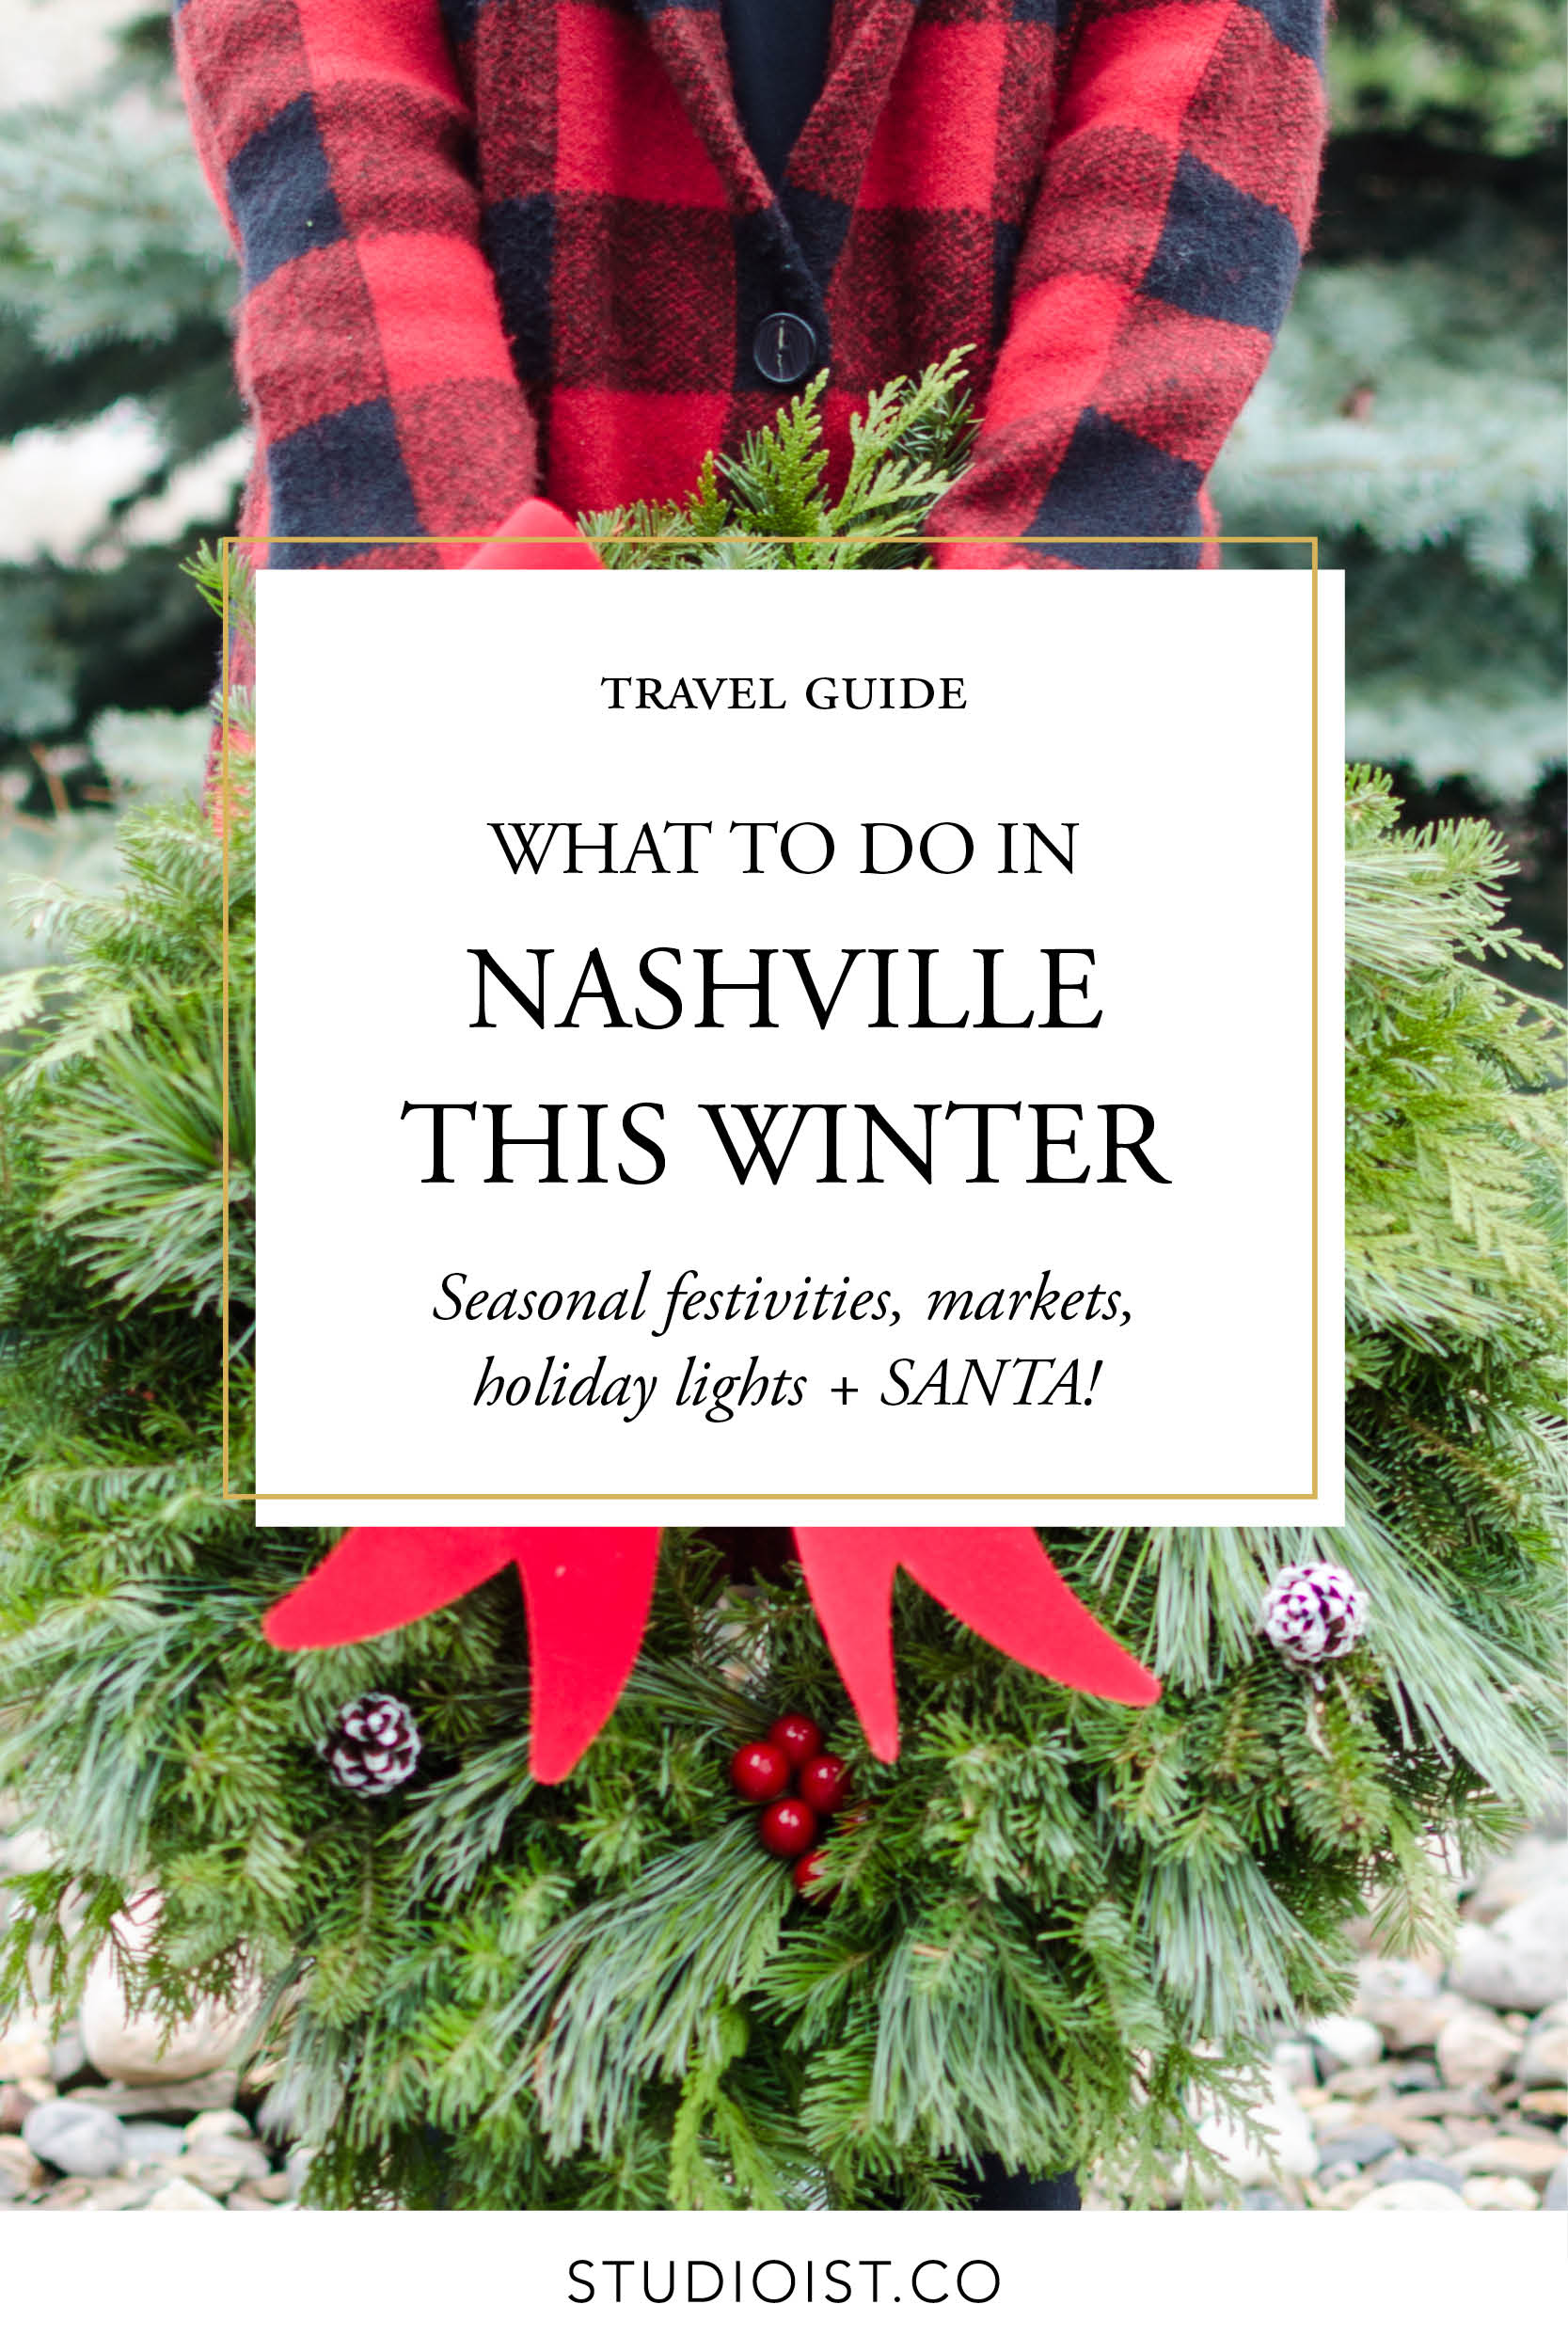 Studioist_Pinterest Design_Nashville Winter Events.jpg